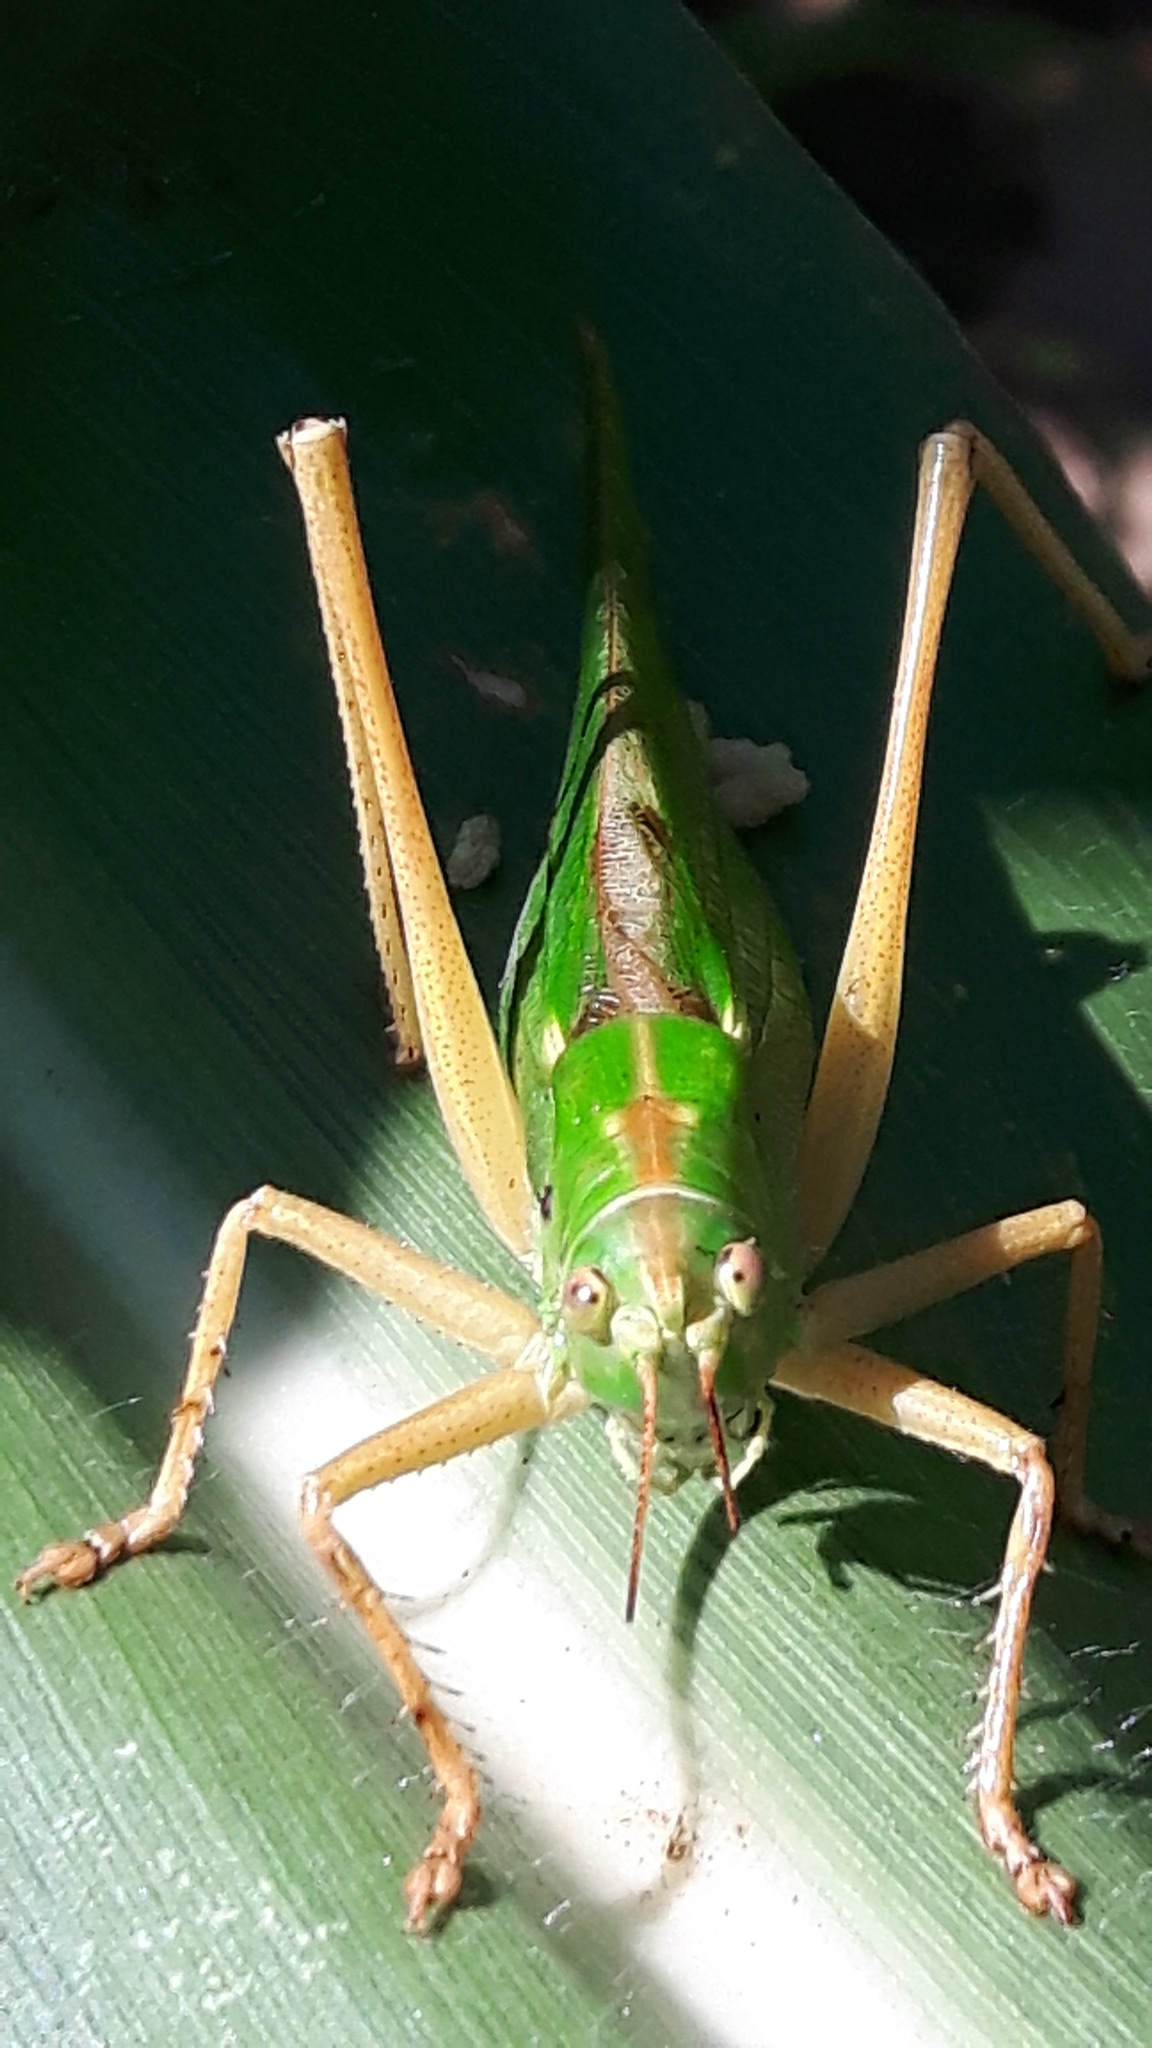 A beautiful green grasshopper by Mevludin_Hasanovic